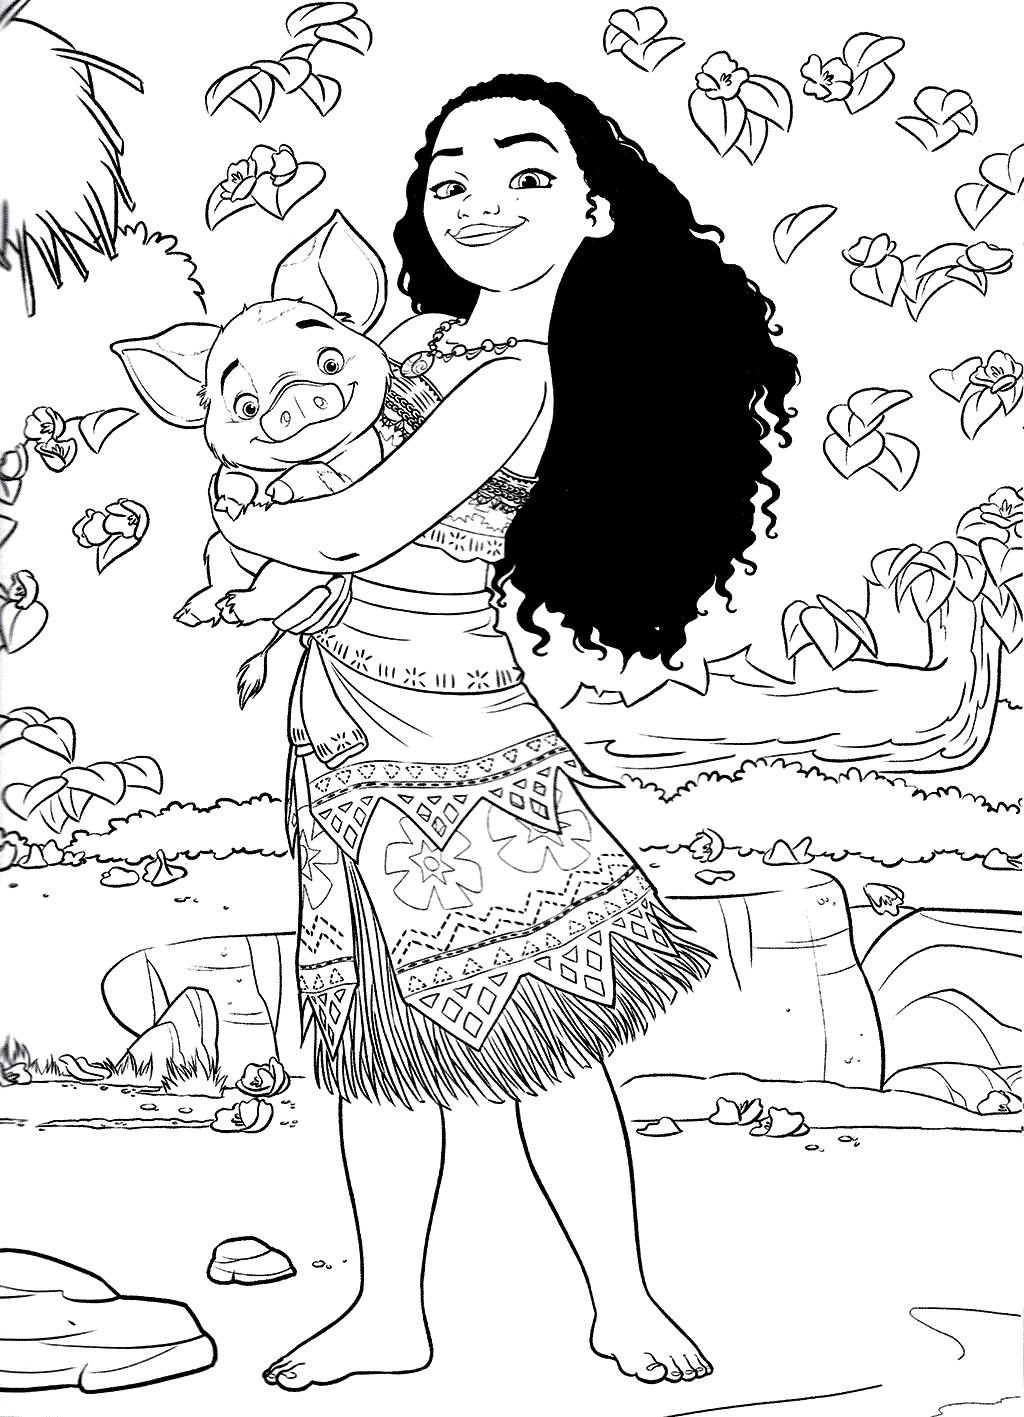 free moana coloring pages Top 10 Moana Coloring Pages  Free Printables | Free Coloring Pages  free moana coloring pages